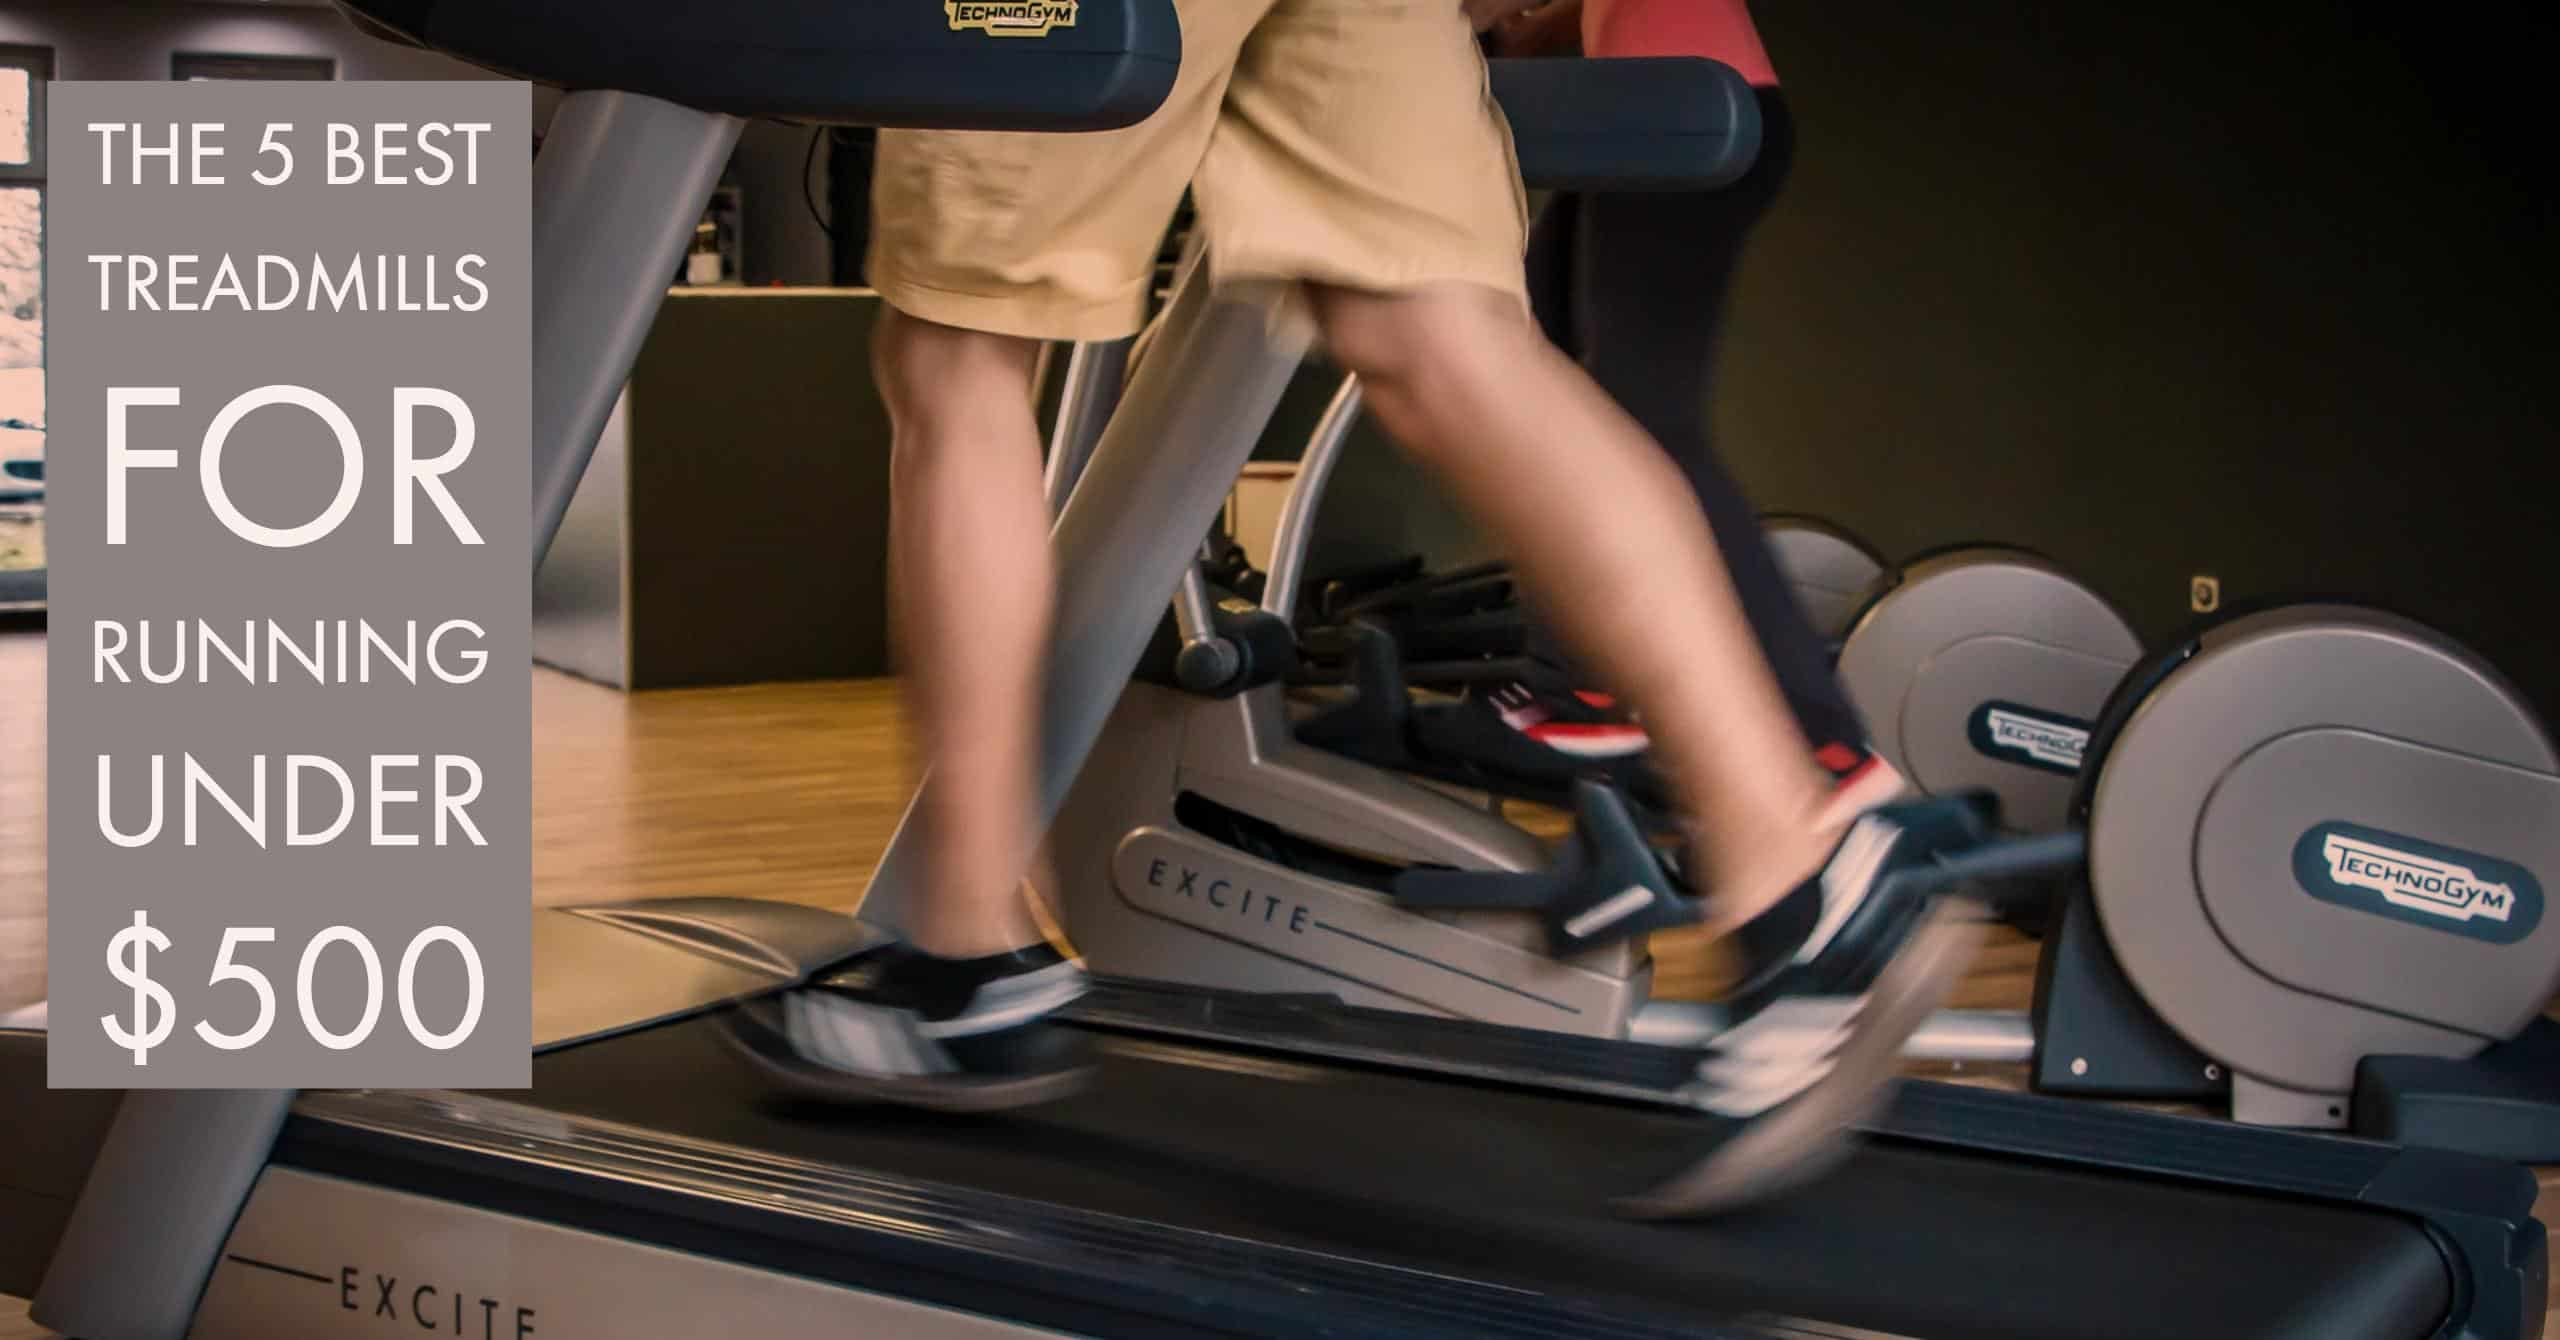 If you are looking for a durable yet affordable treadmill, we have you covered. Here are the 5 Best Treadmills for Running Under $500